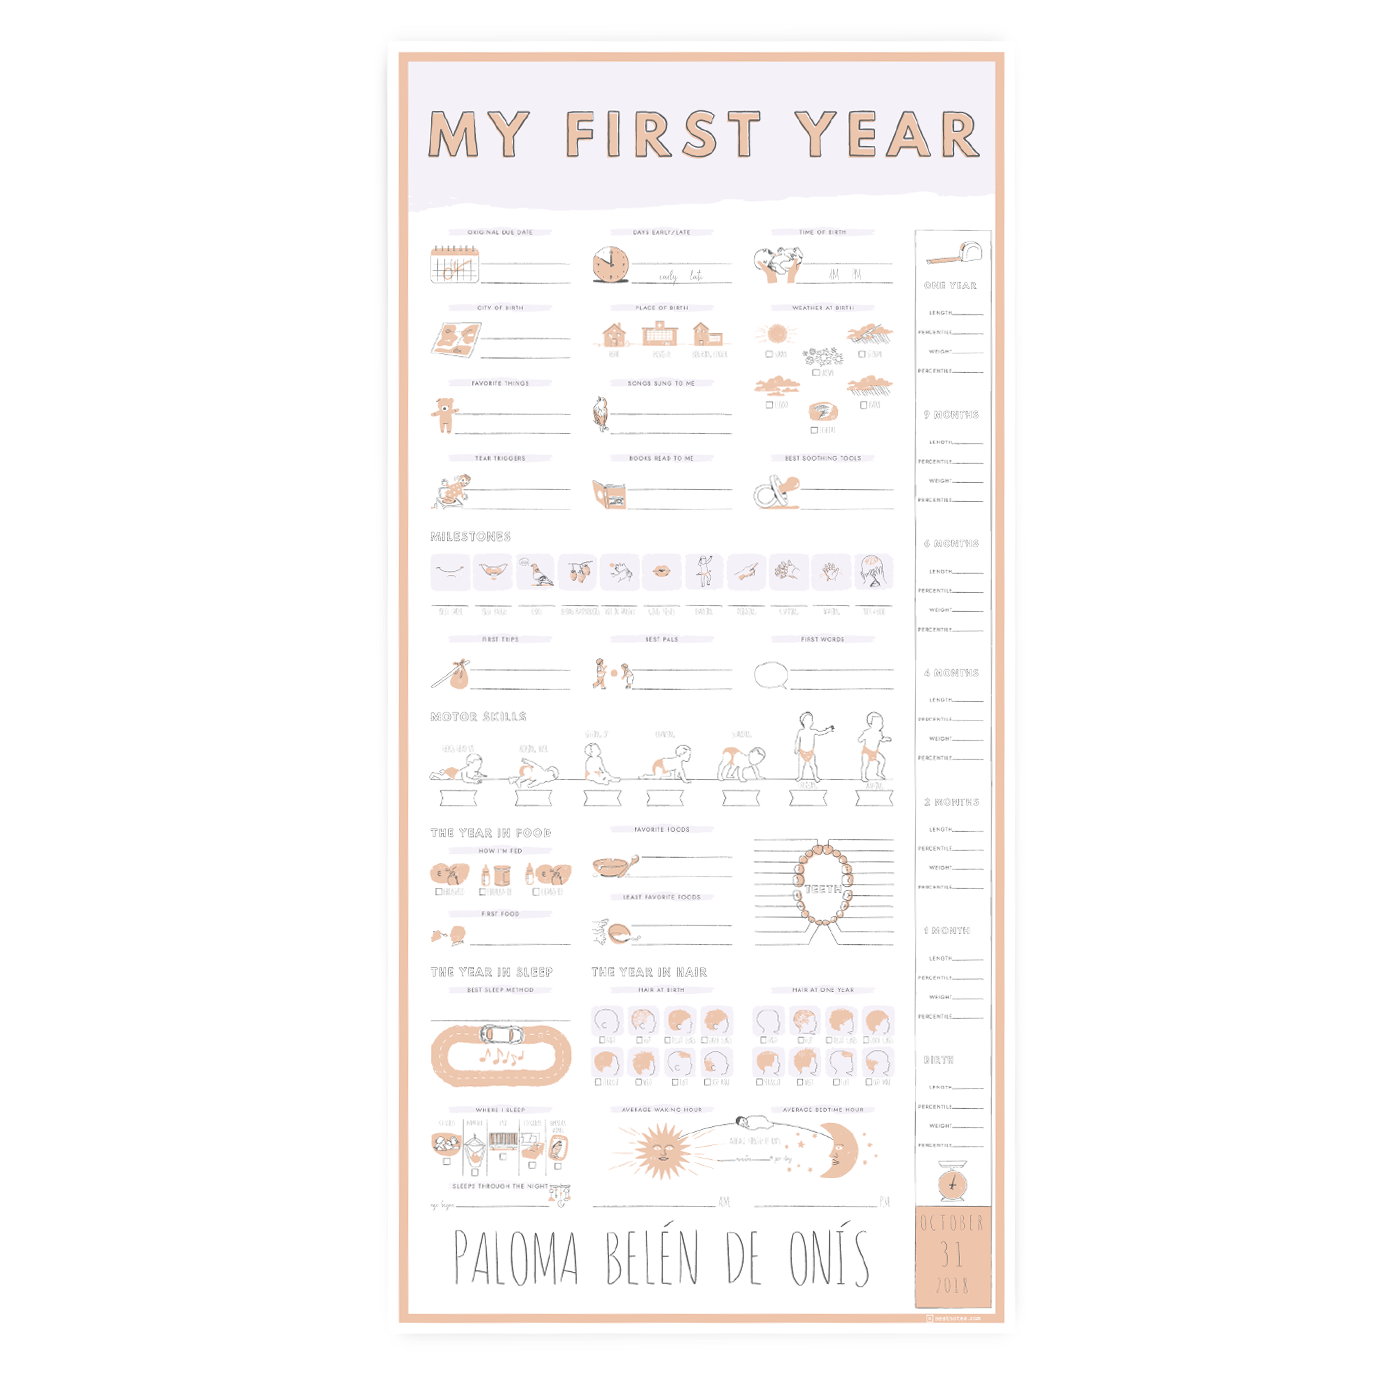 Personalized My First Year Poster - Simple